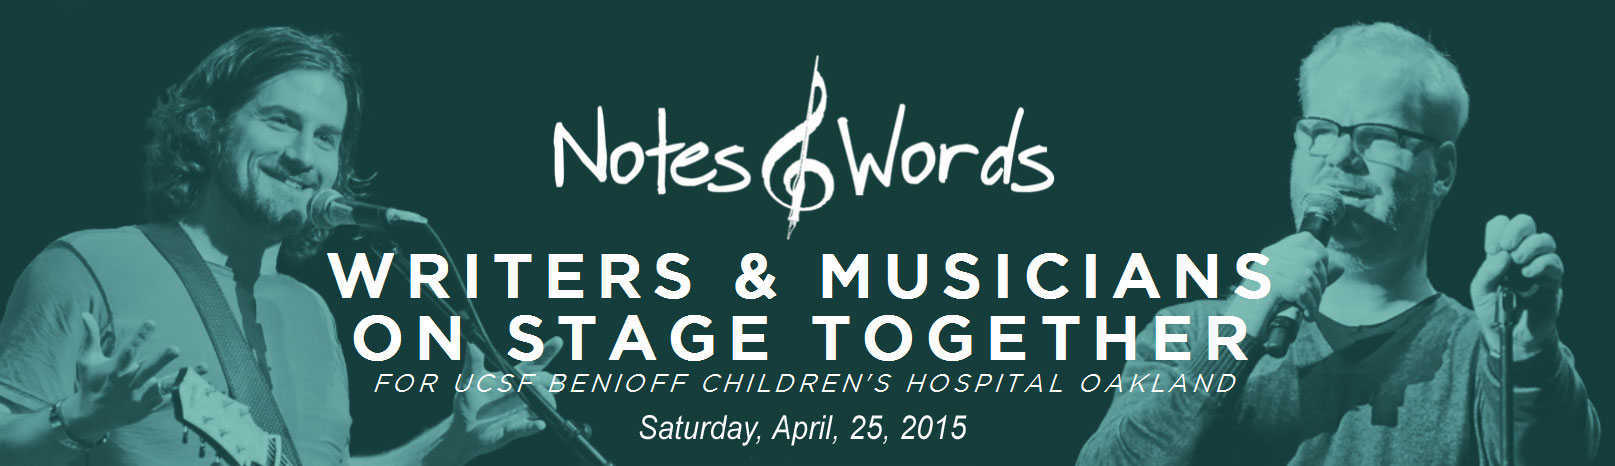 Notes & Words Benefit for UCSF Benioff Children's Hospital Oakland